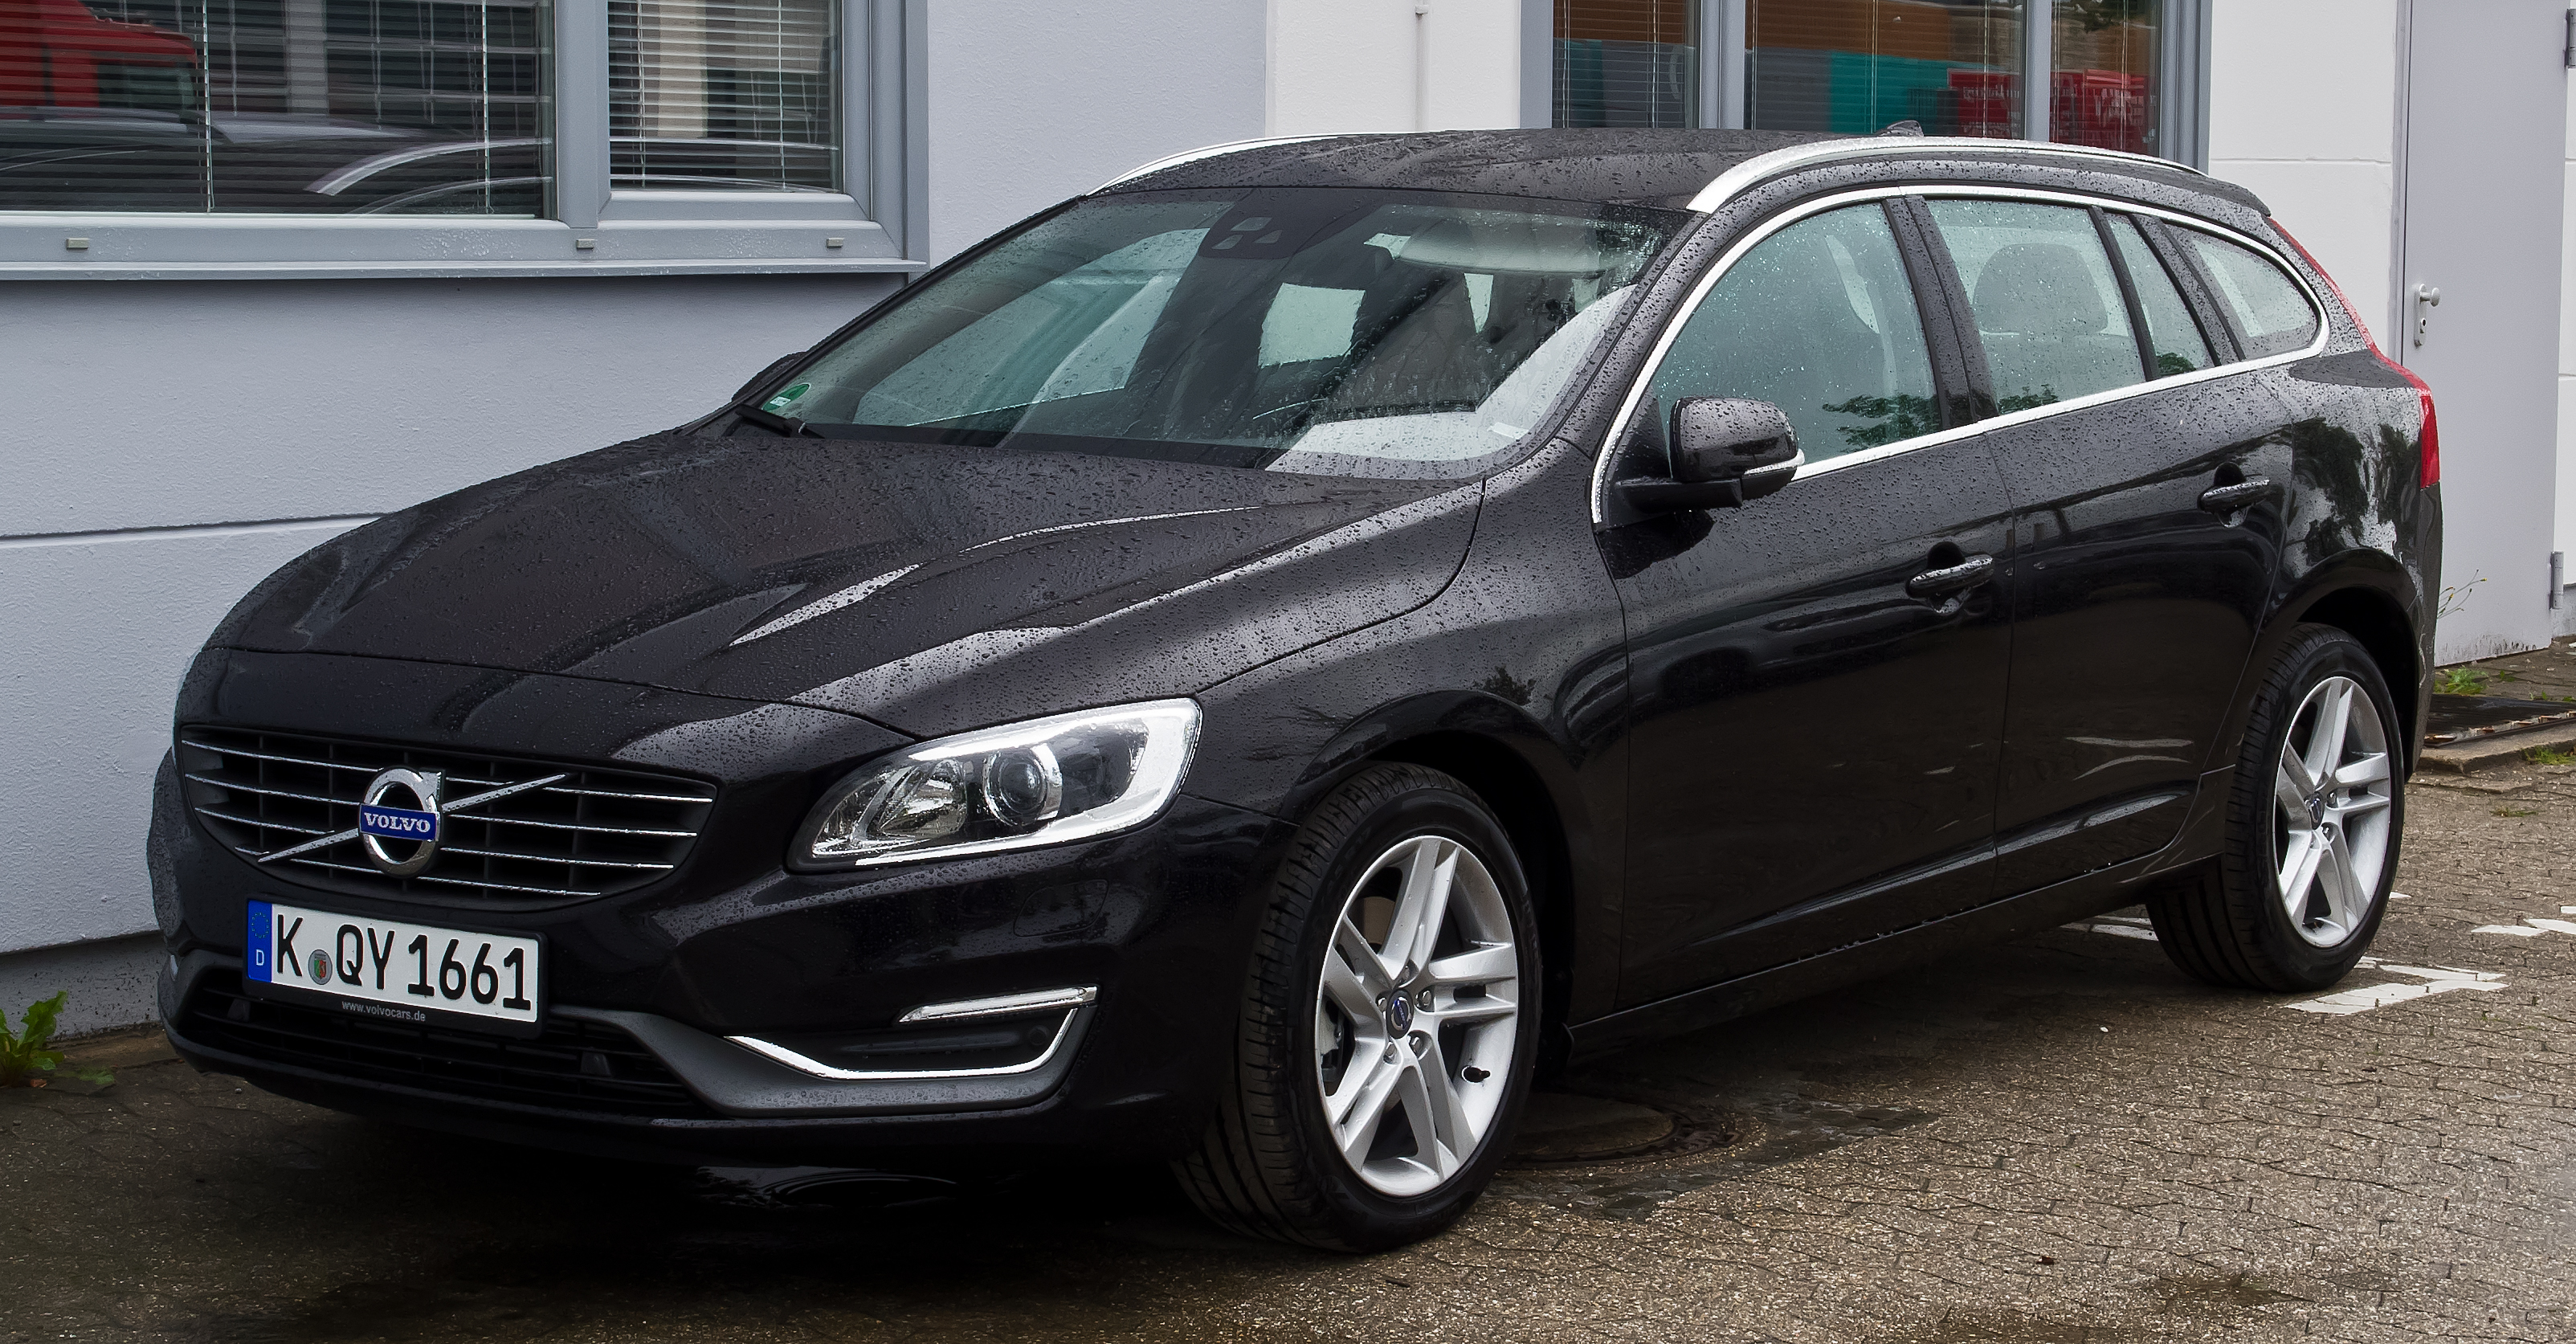 2013 Volvo V60 (f)   pictures, information and specs - Auto